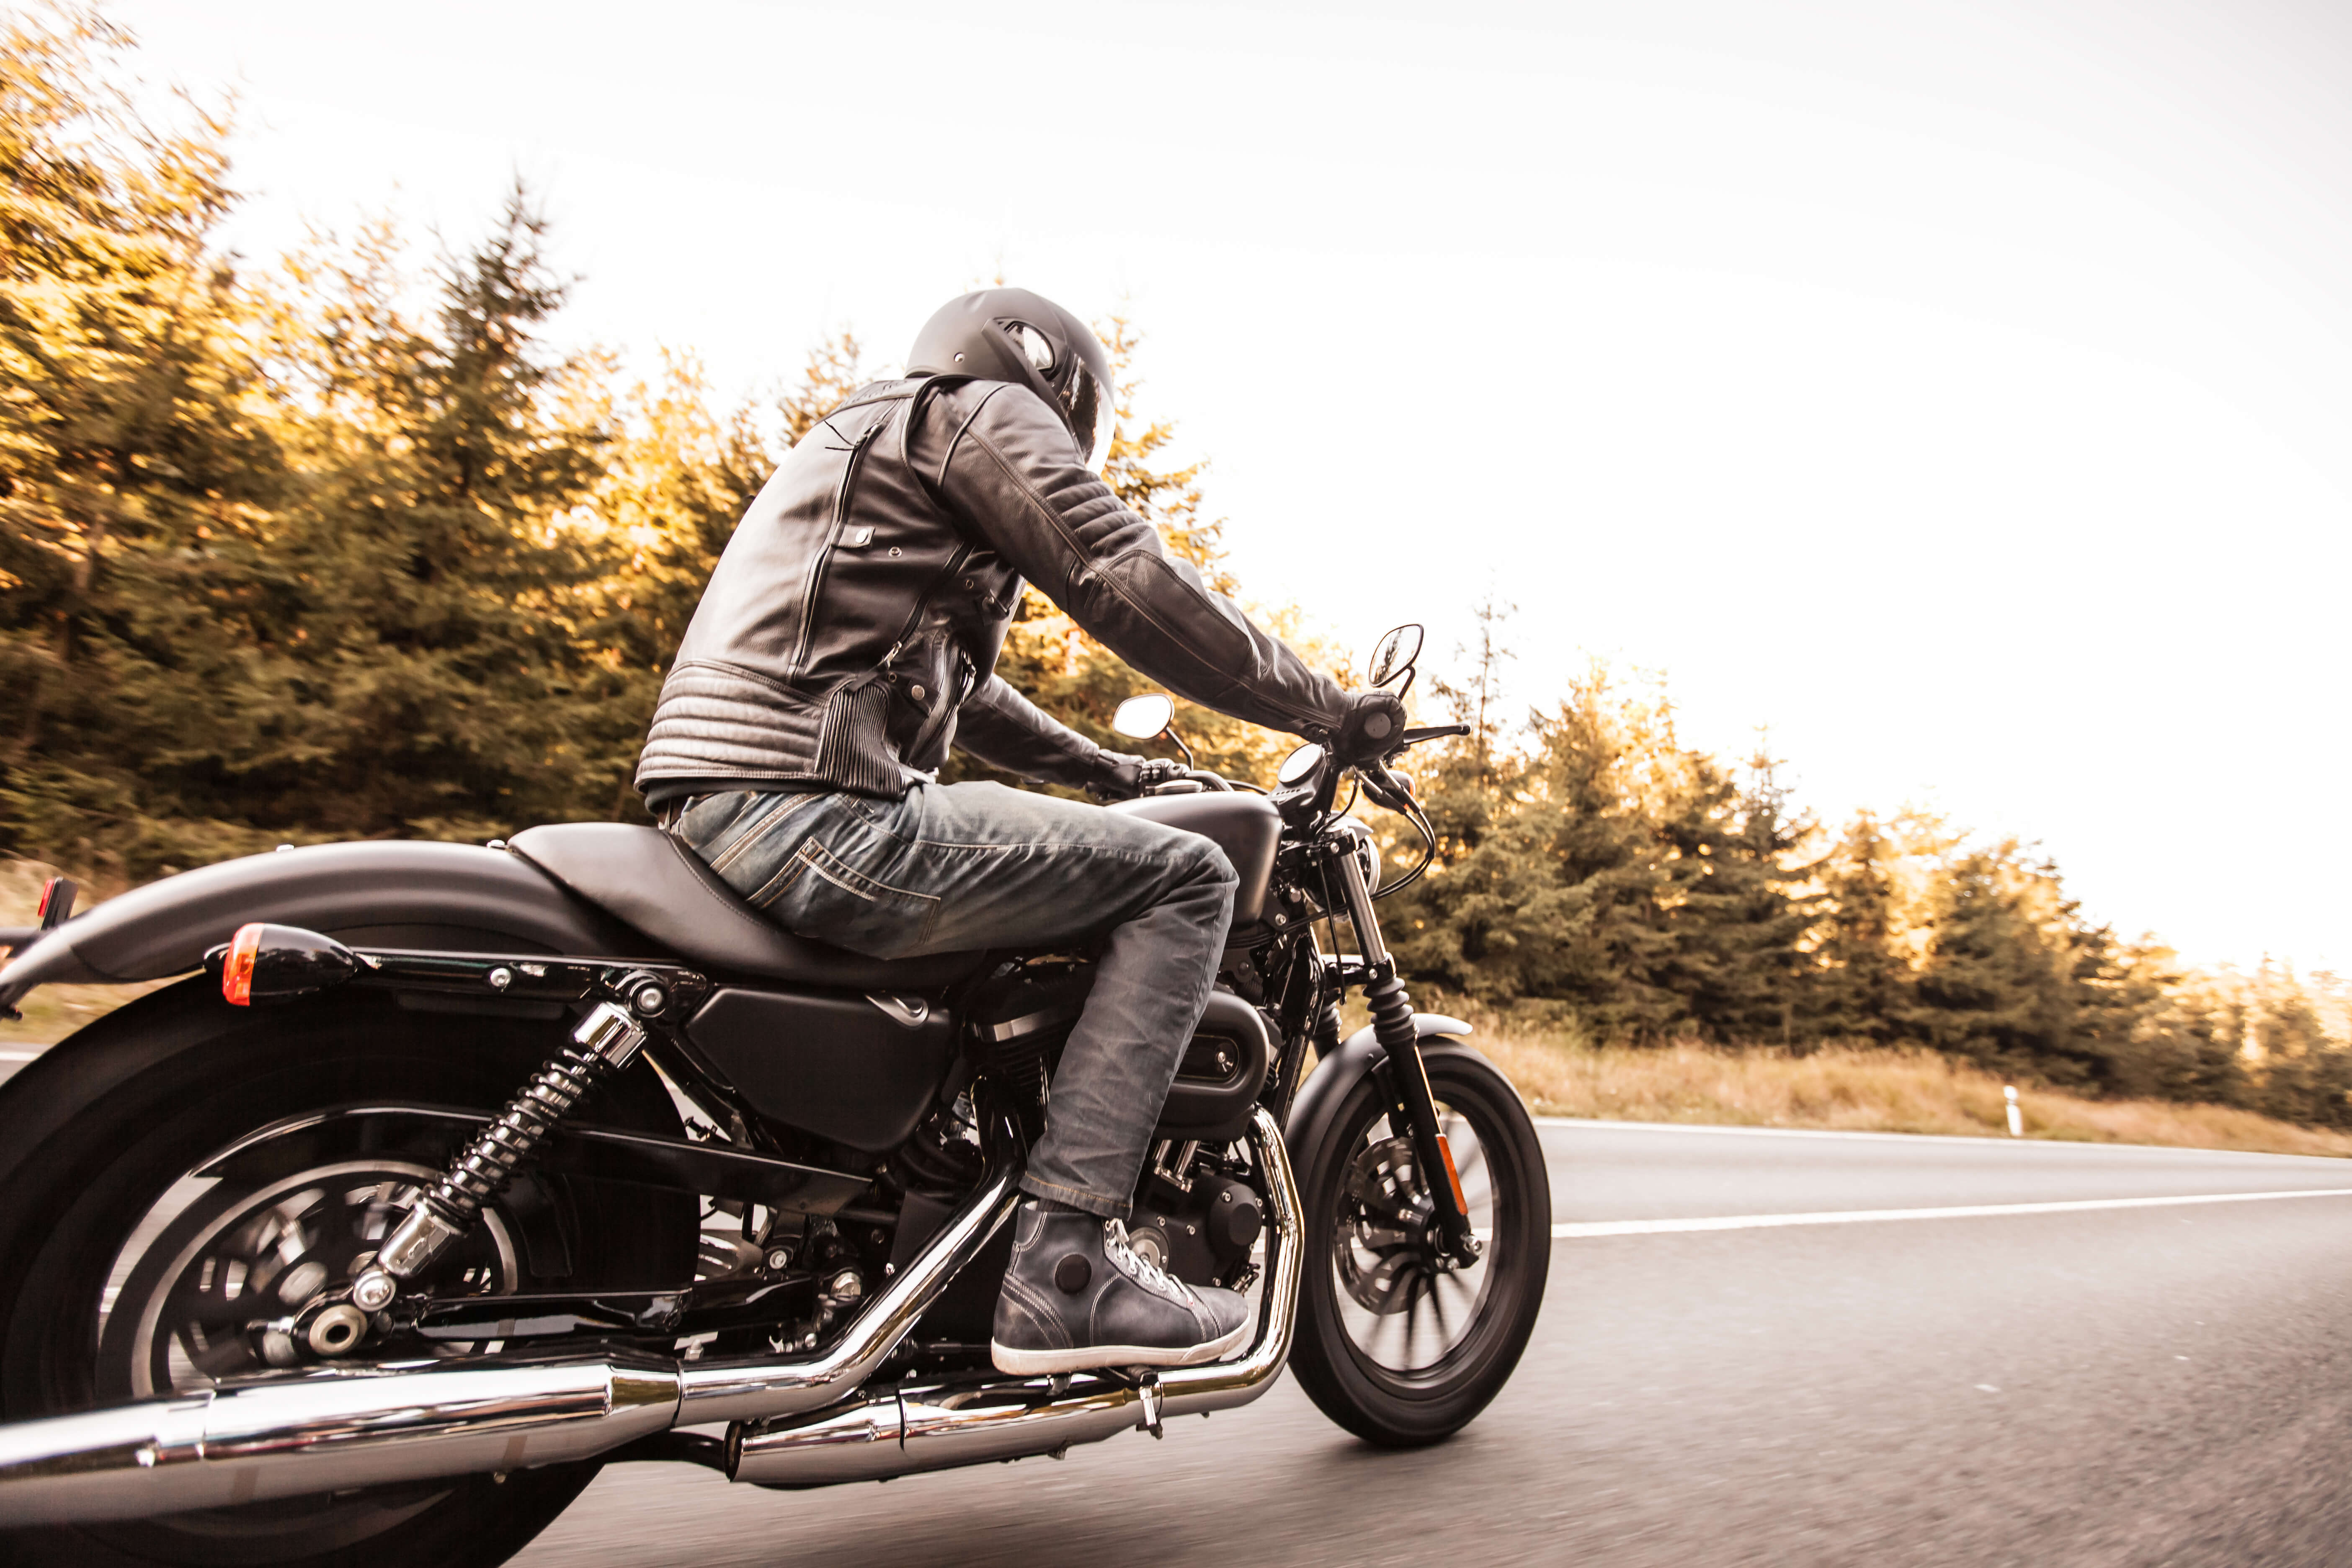 Motorcycle Insurance from Hempkins Insurance